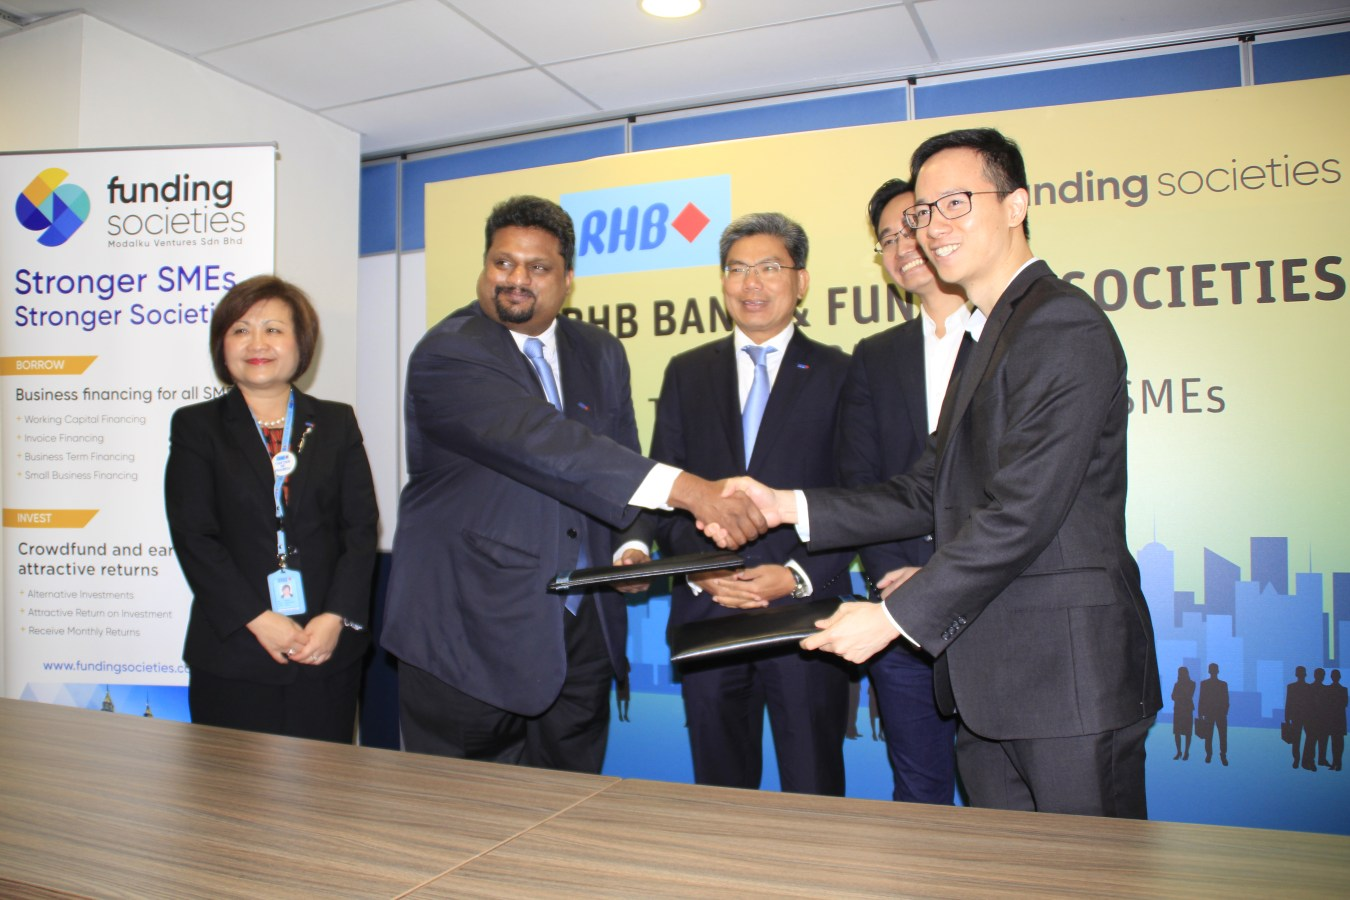 Funding Societies and RHB Banking Group Collaboration